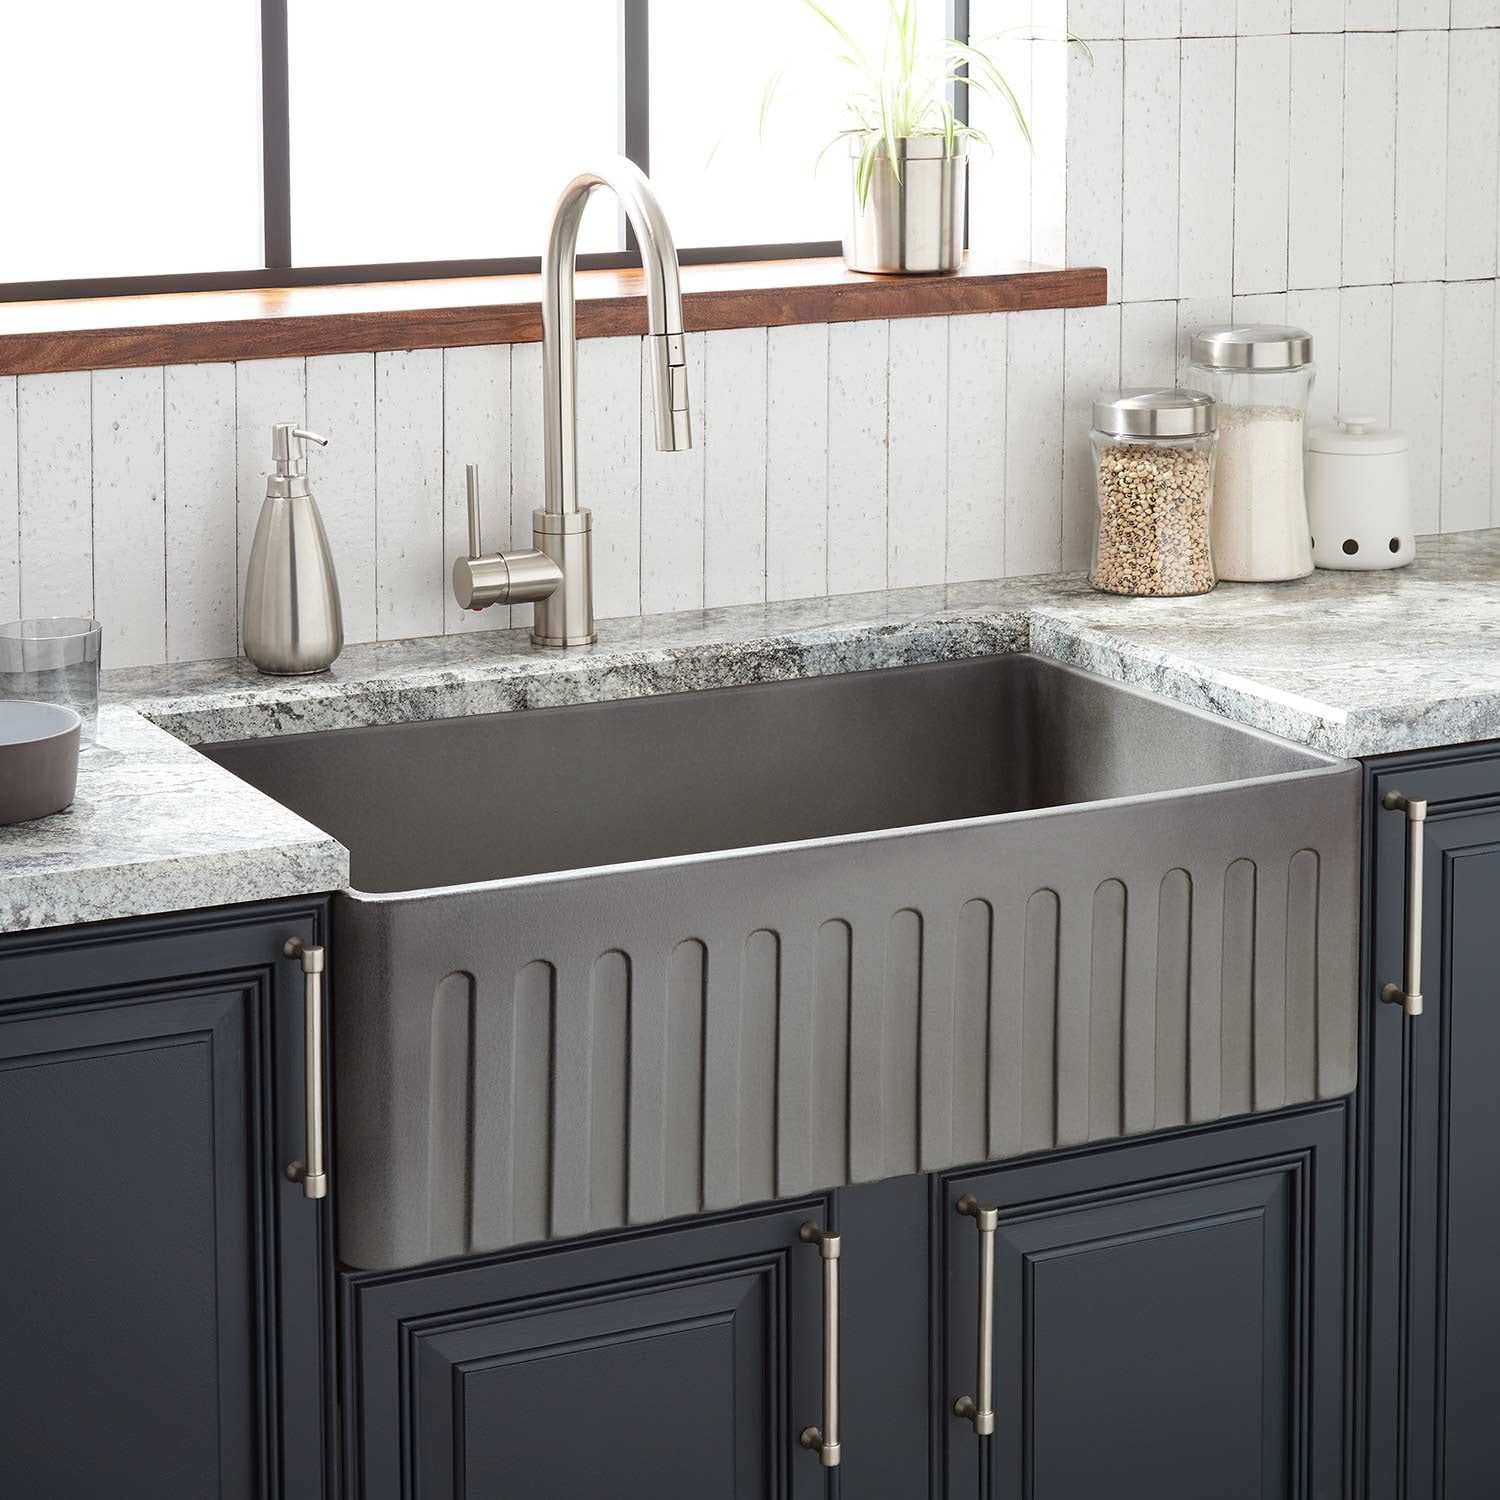 33 Mancini Reversible Fireclay Farmhouse Sink Fluted Apron Smoke Gray Fireclay Farmhouse Sink Contemporary Kitchen Farmhouse Sink Kitchen